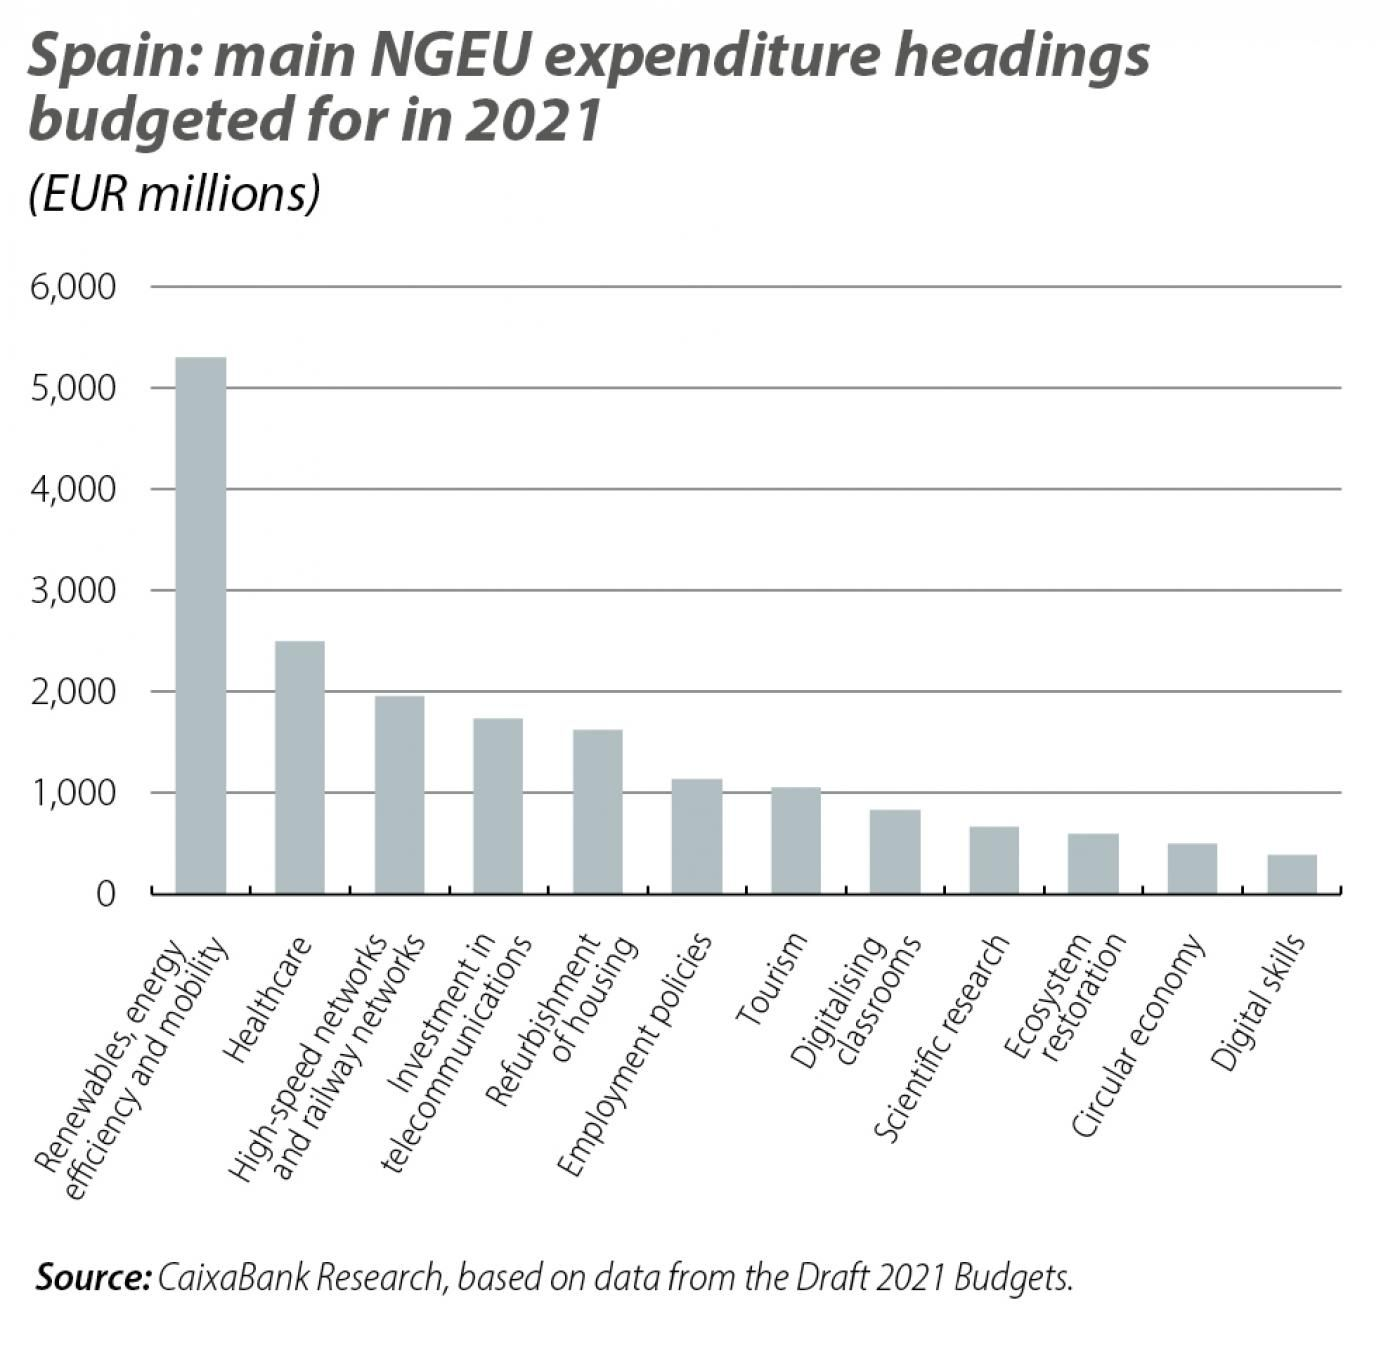 Spain: main NGEU expenditure headings budgeted for in 2021